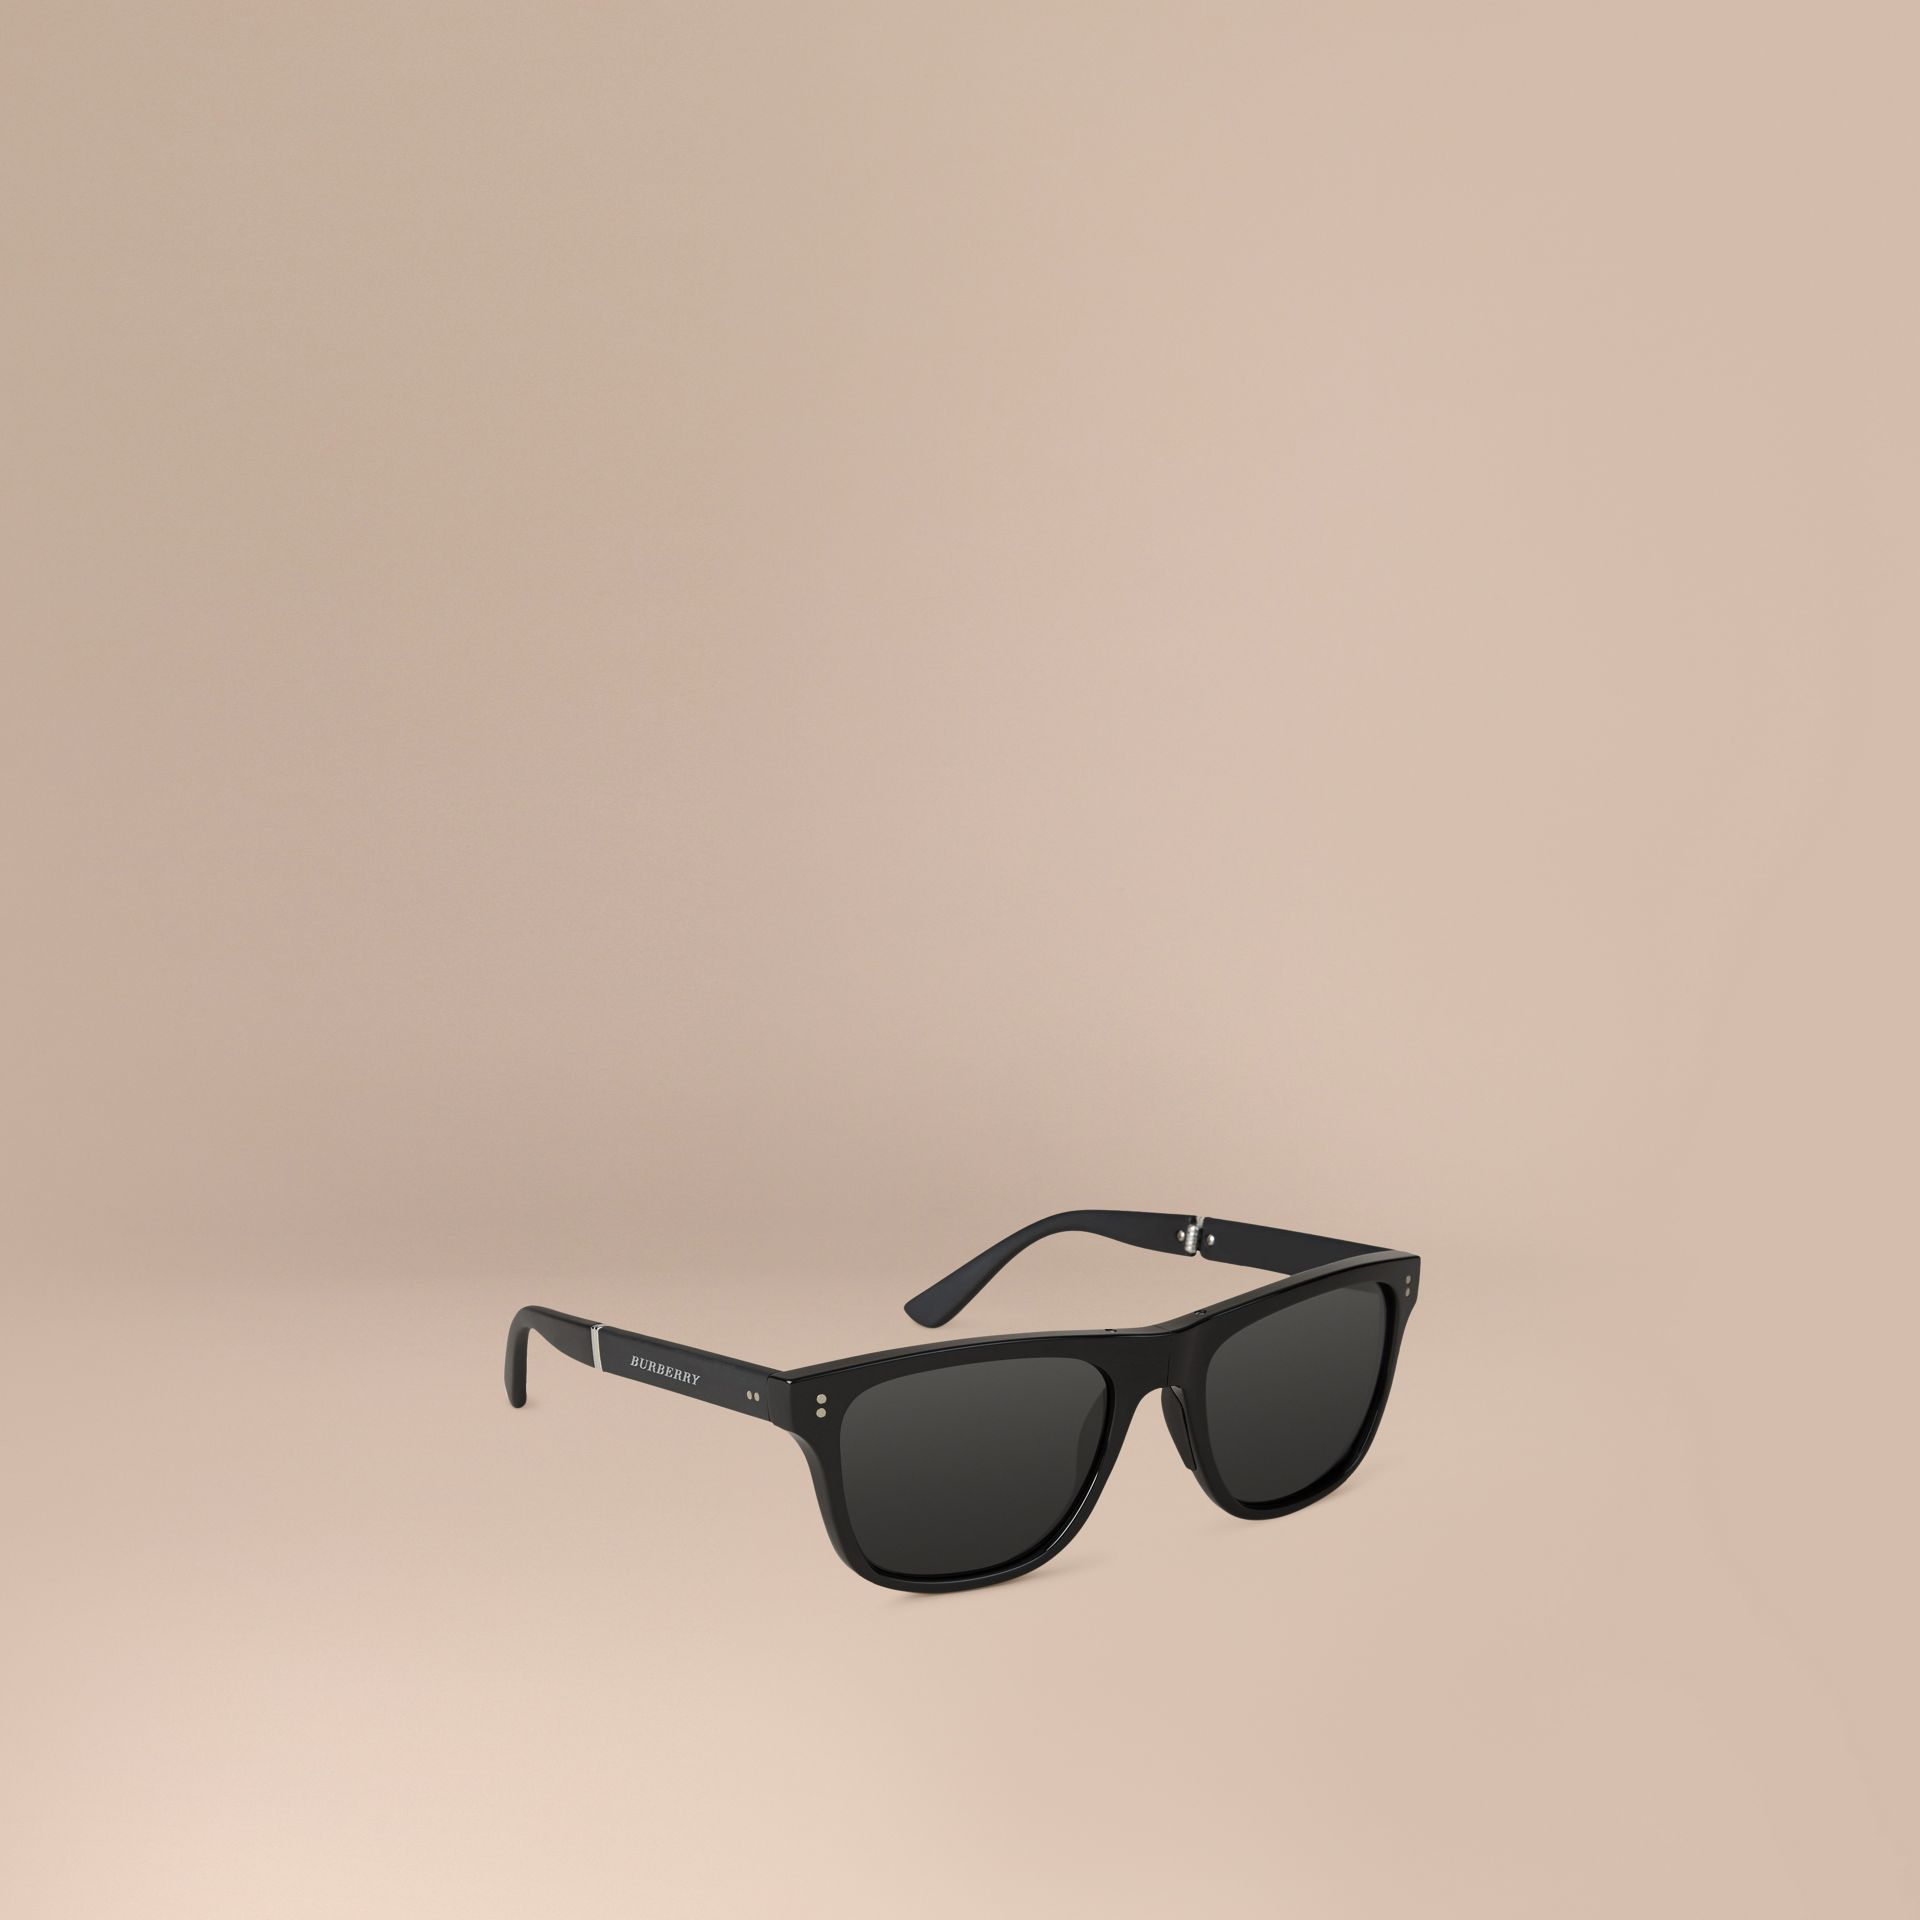 Folding Rectangular Frame Sunglasses in Black - Men | Burberry - gallery image 0